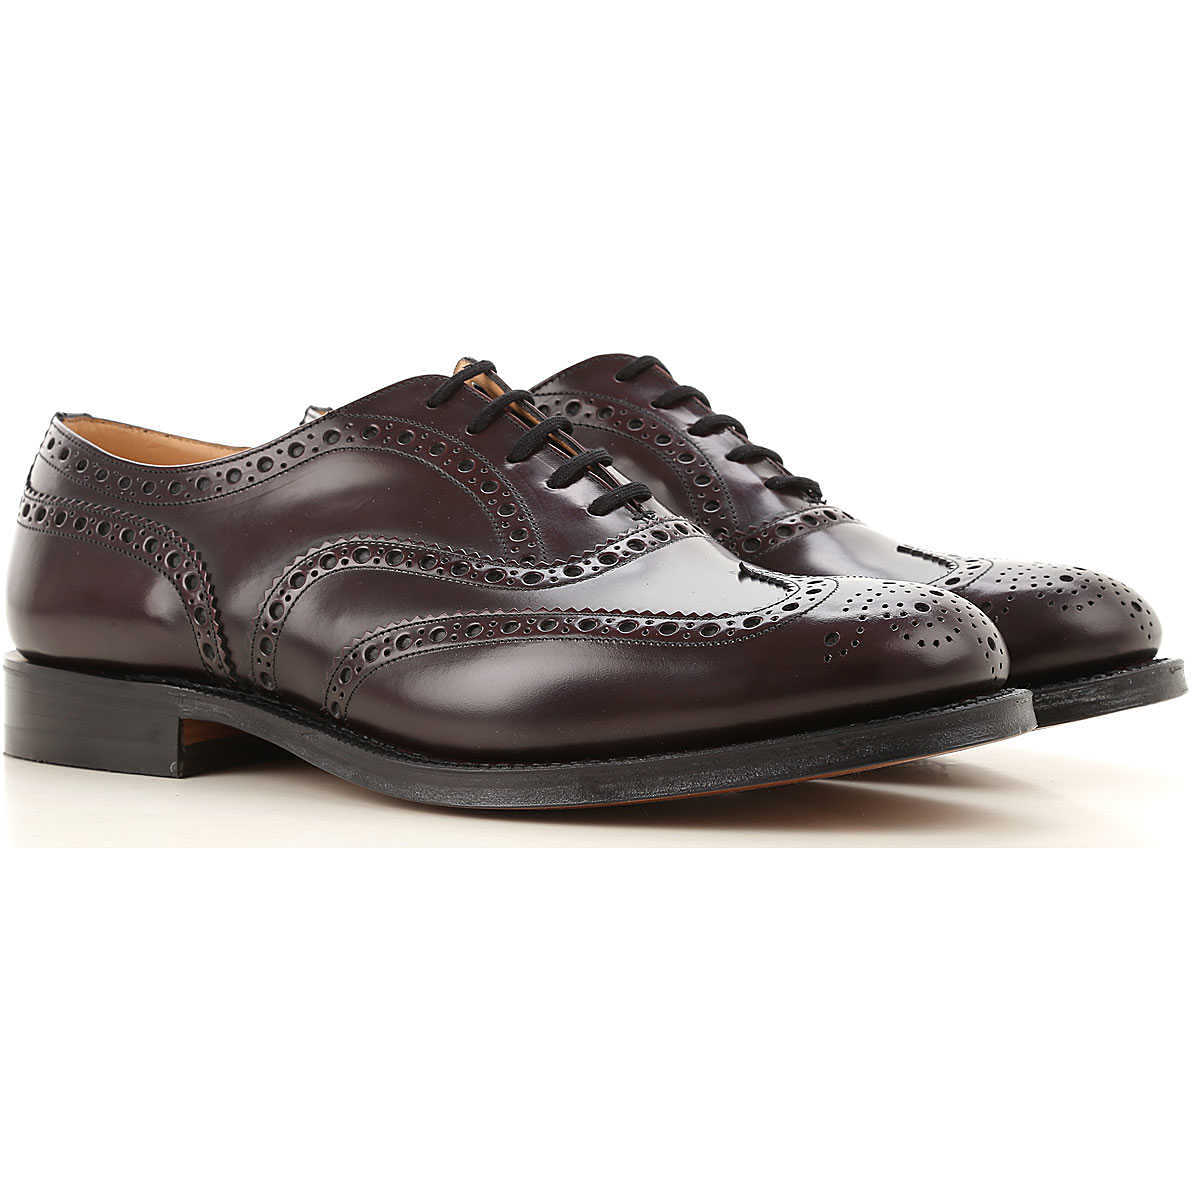 Church's Lace Up Shoes for Men Oxfords 11 9 Derbies and Brogues UK - GOOFASH